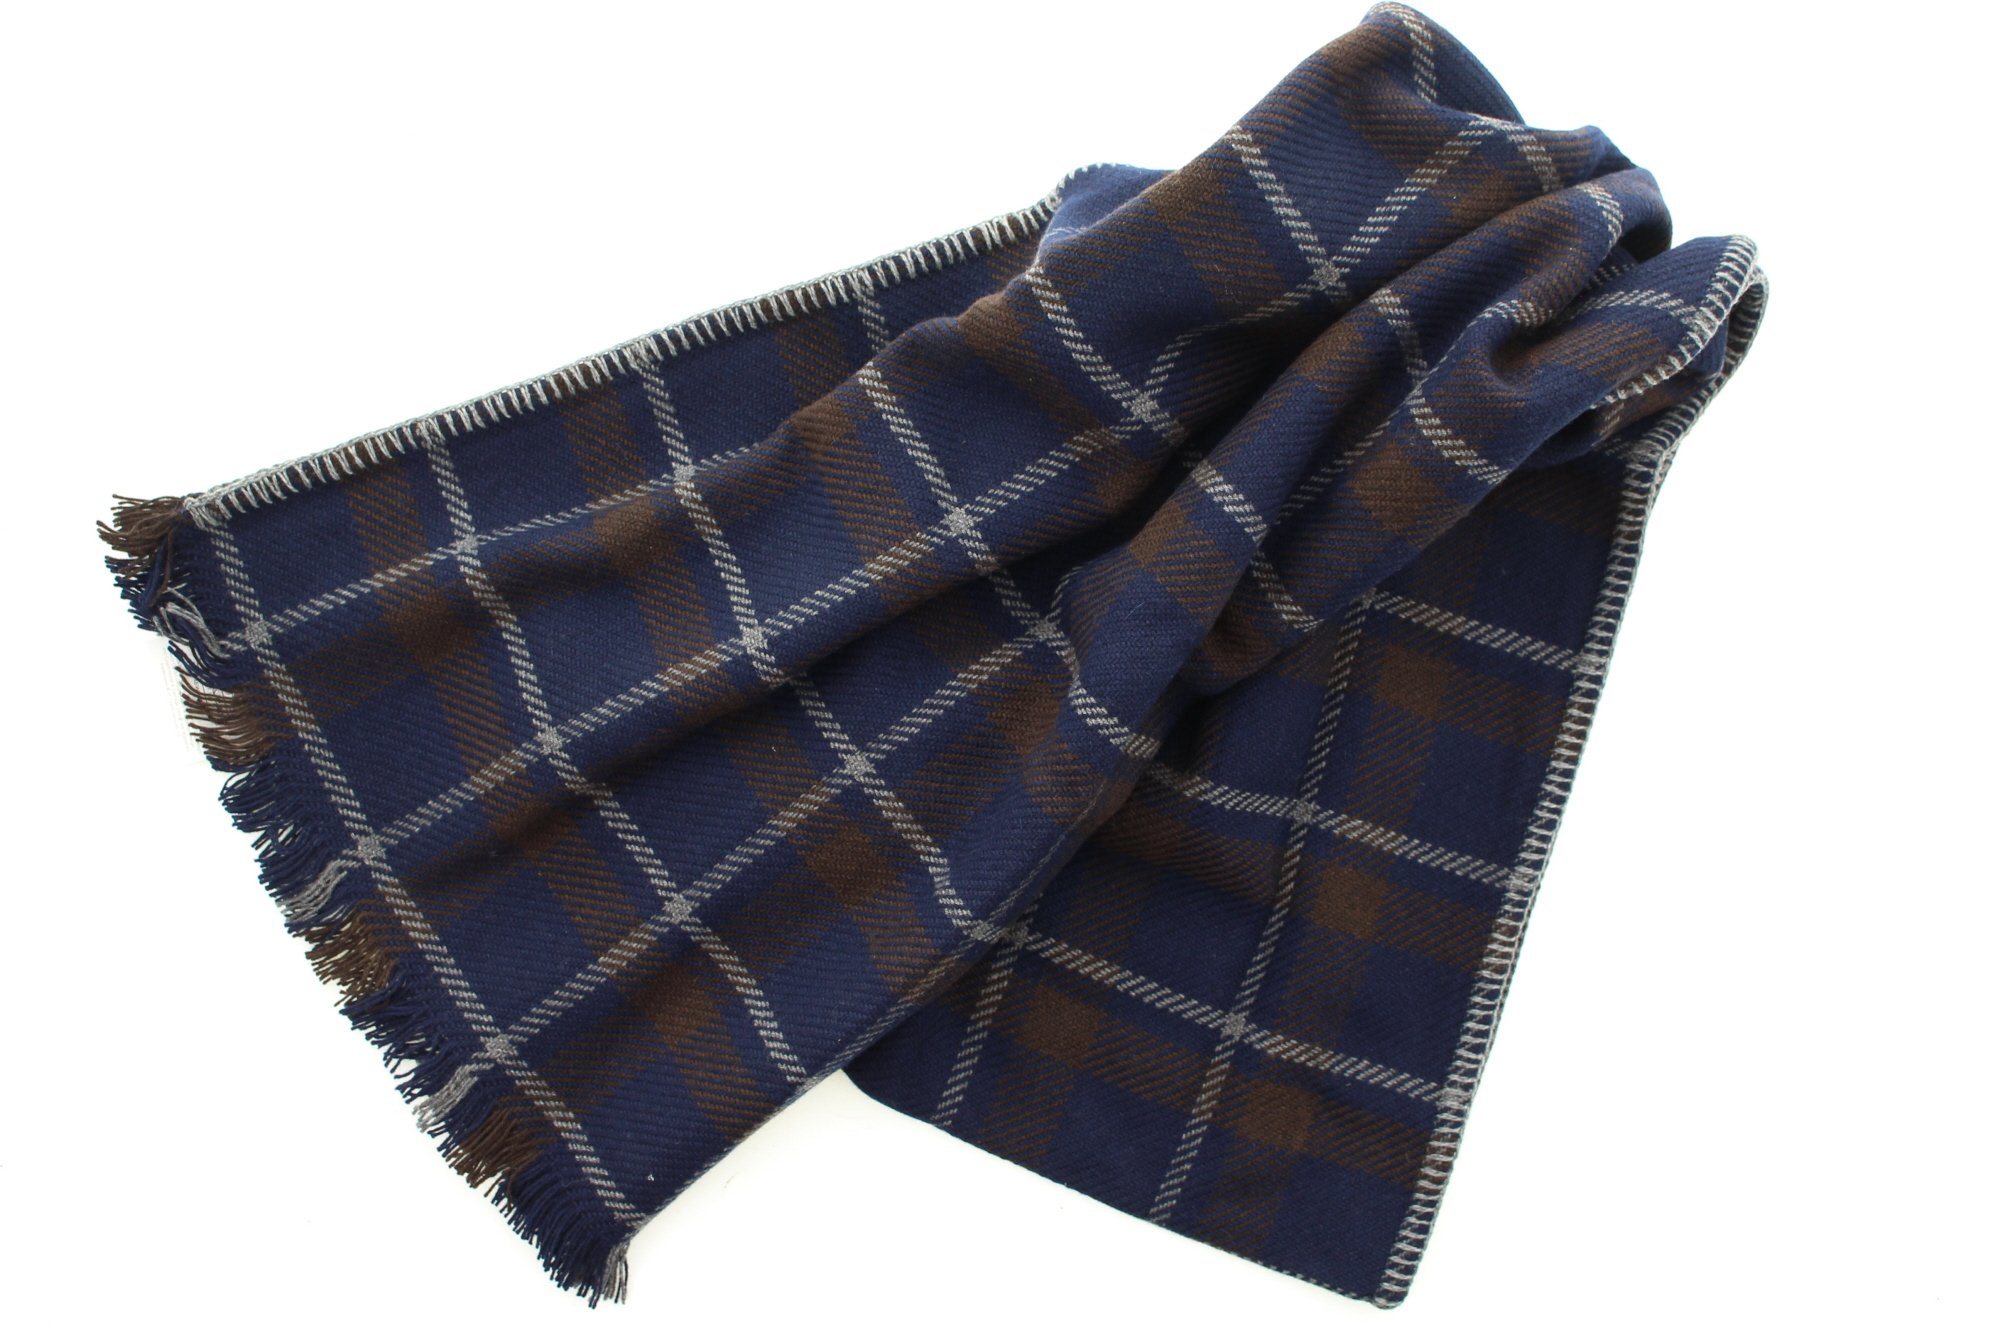 Coach 83145 Men's Wool Cashmere Tattersall Plaid Winter Scarf by Coach